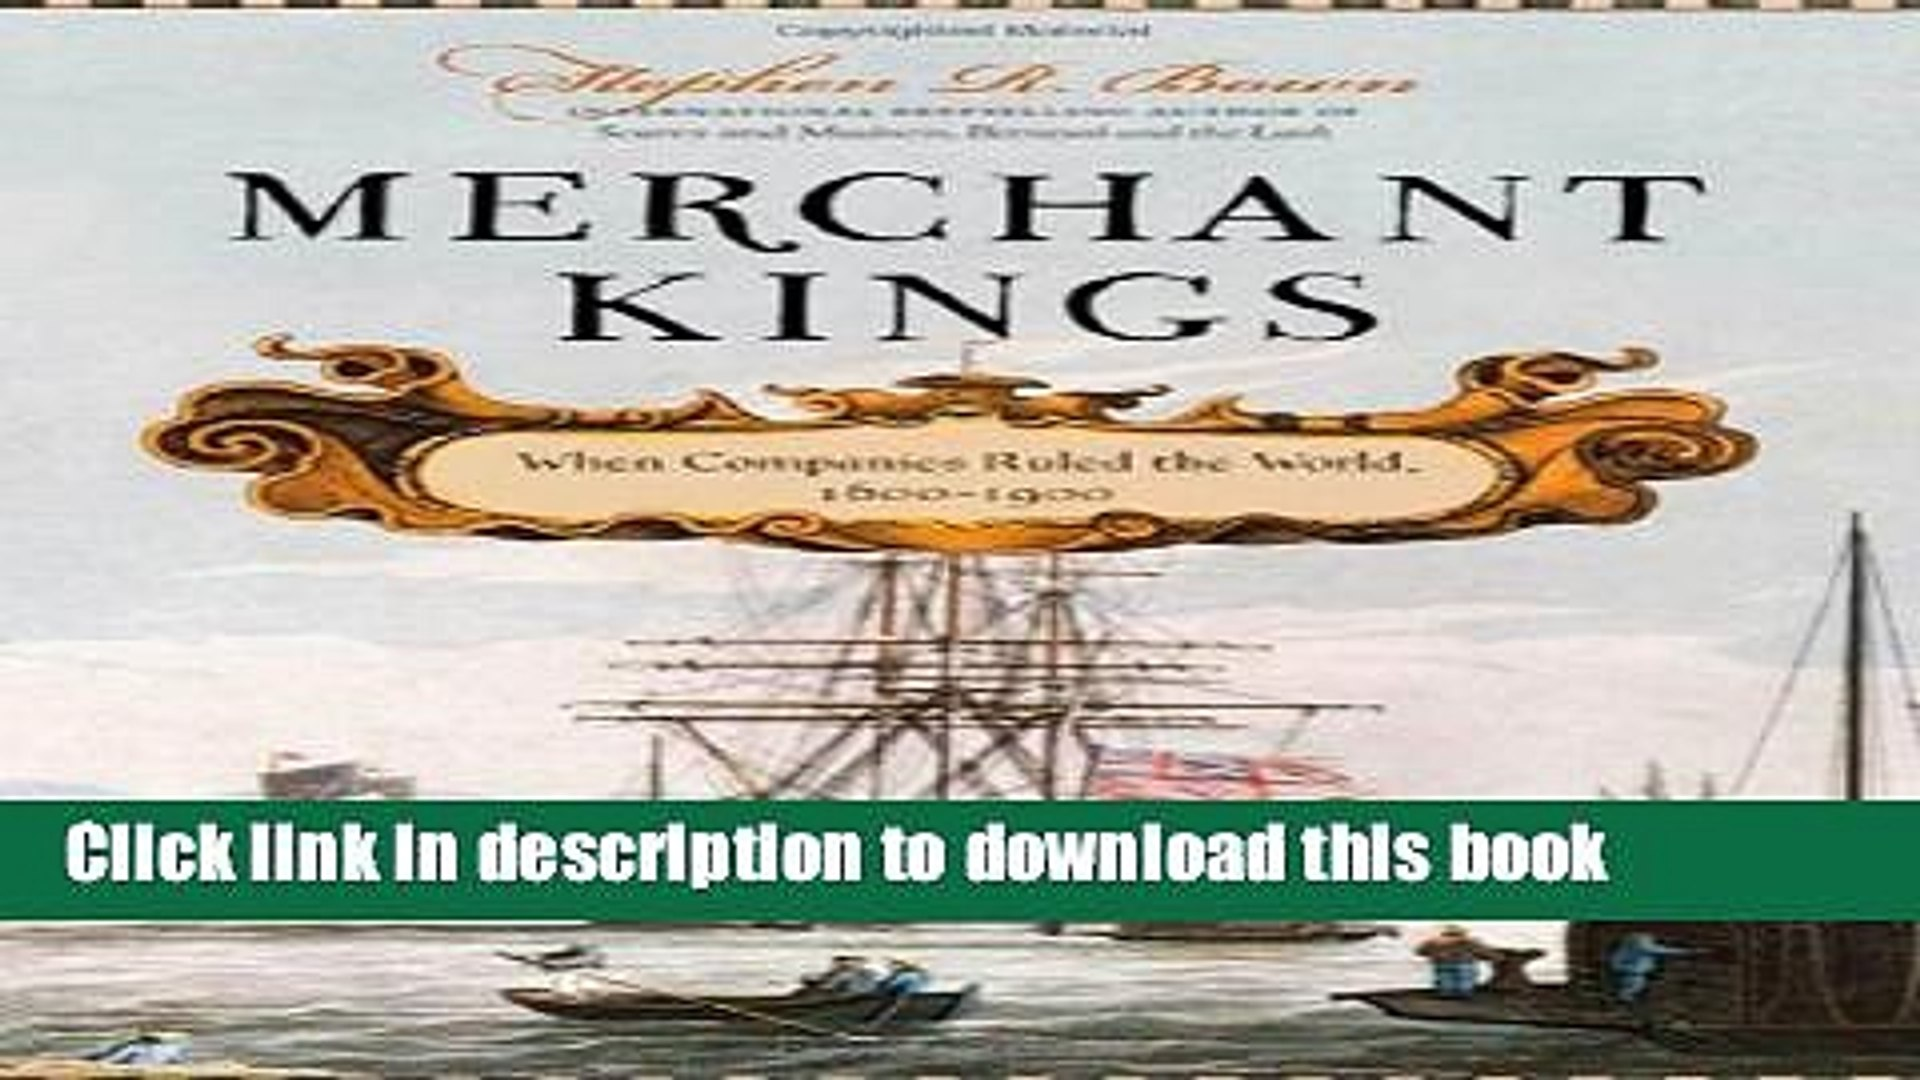 [Download] Merchant Kings: When Companies Ruled the World, 1600--1900 Paperback Collection